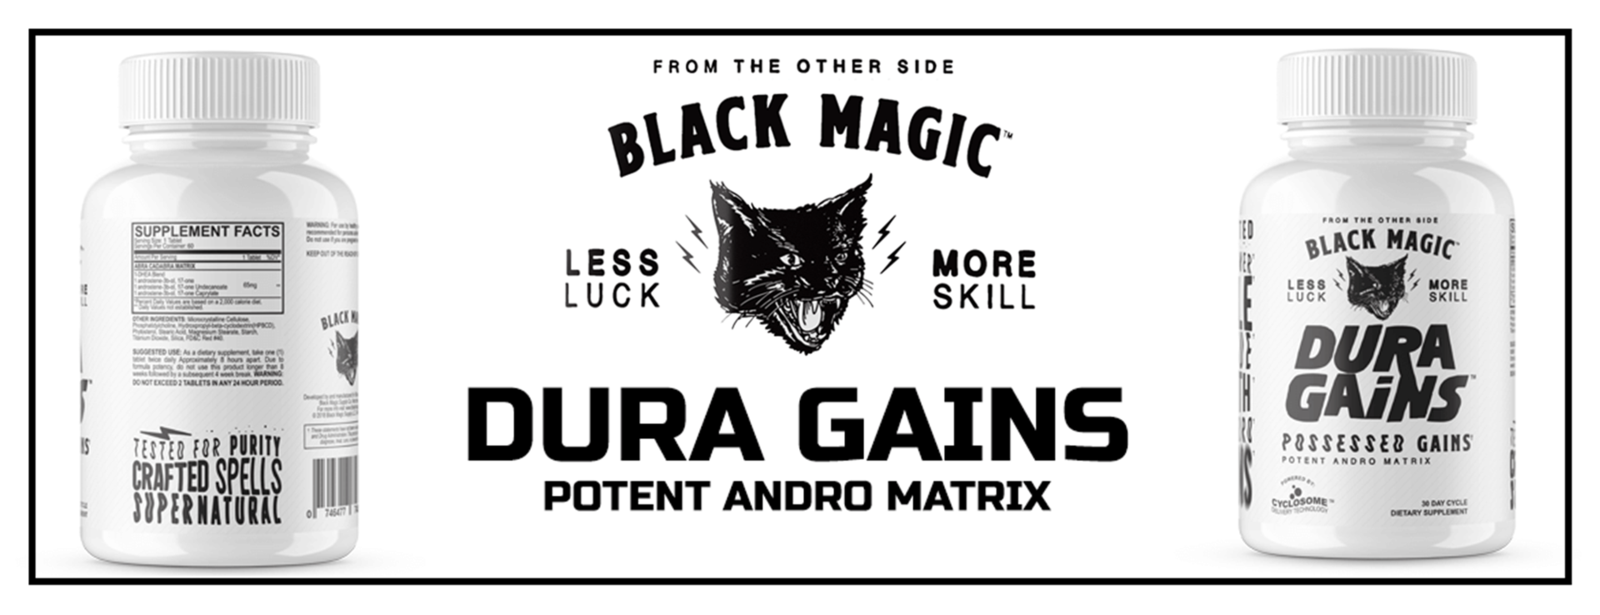 Black_Magic_Product_Banners-Dura_Gains_1600x.png